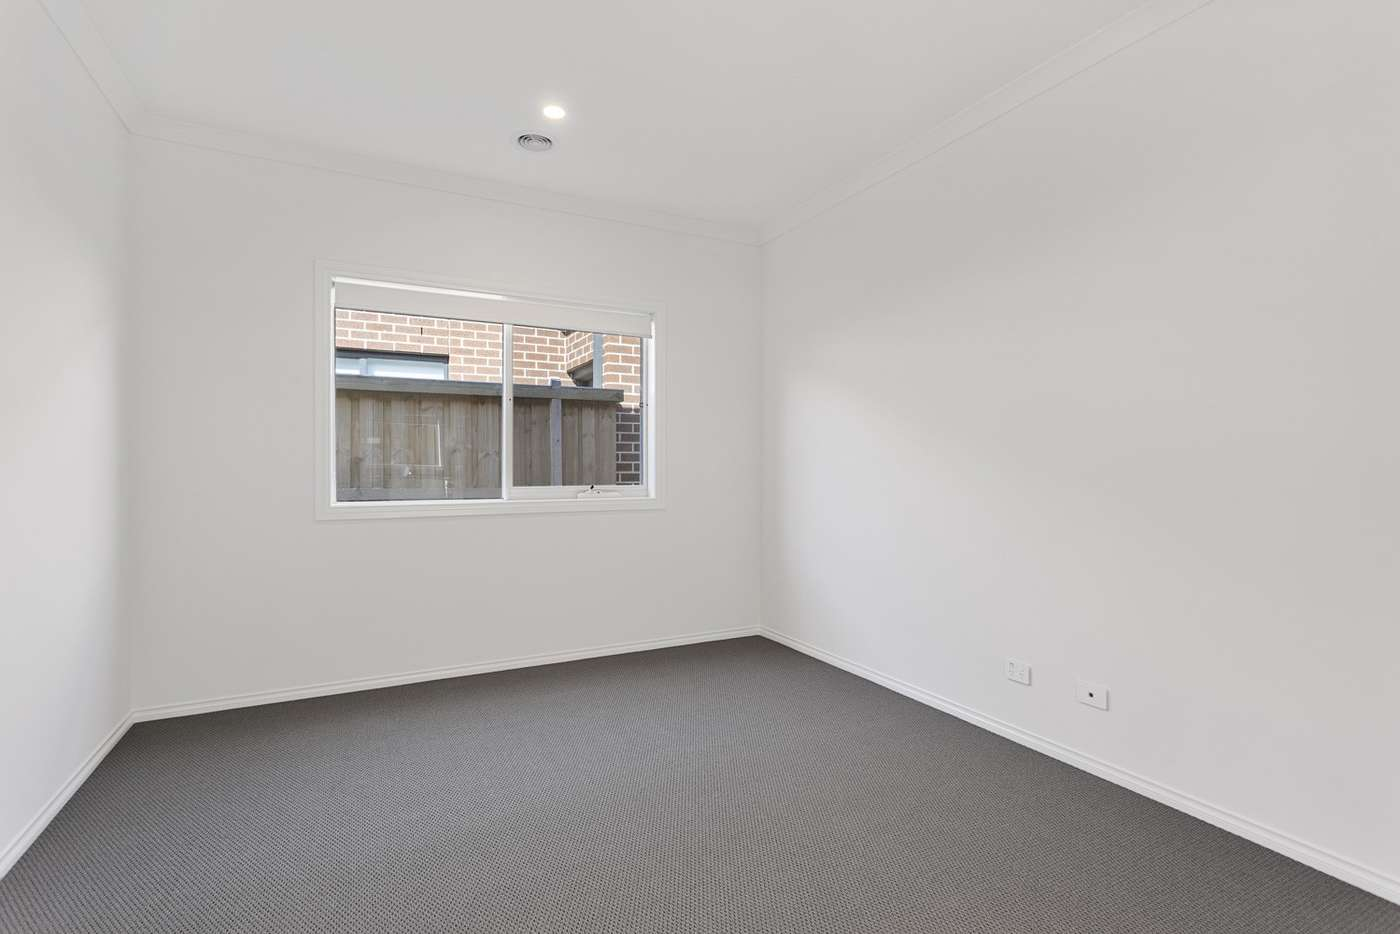 Sixth view of Homely house listing, 8 Gemma Street, Cranbourne East VIC 3977